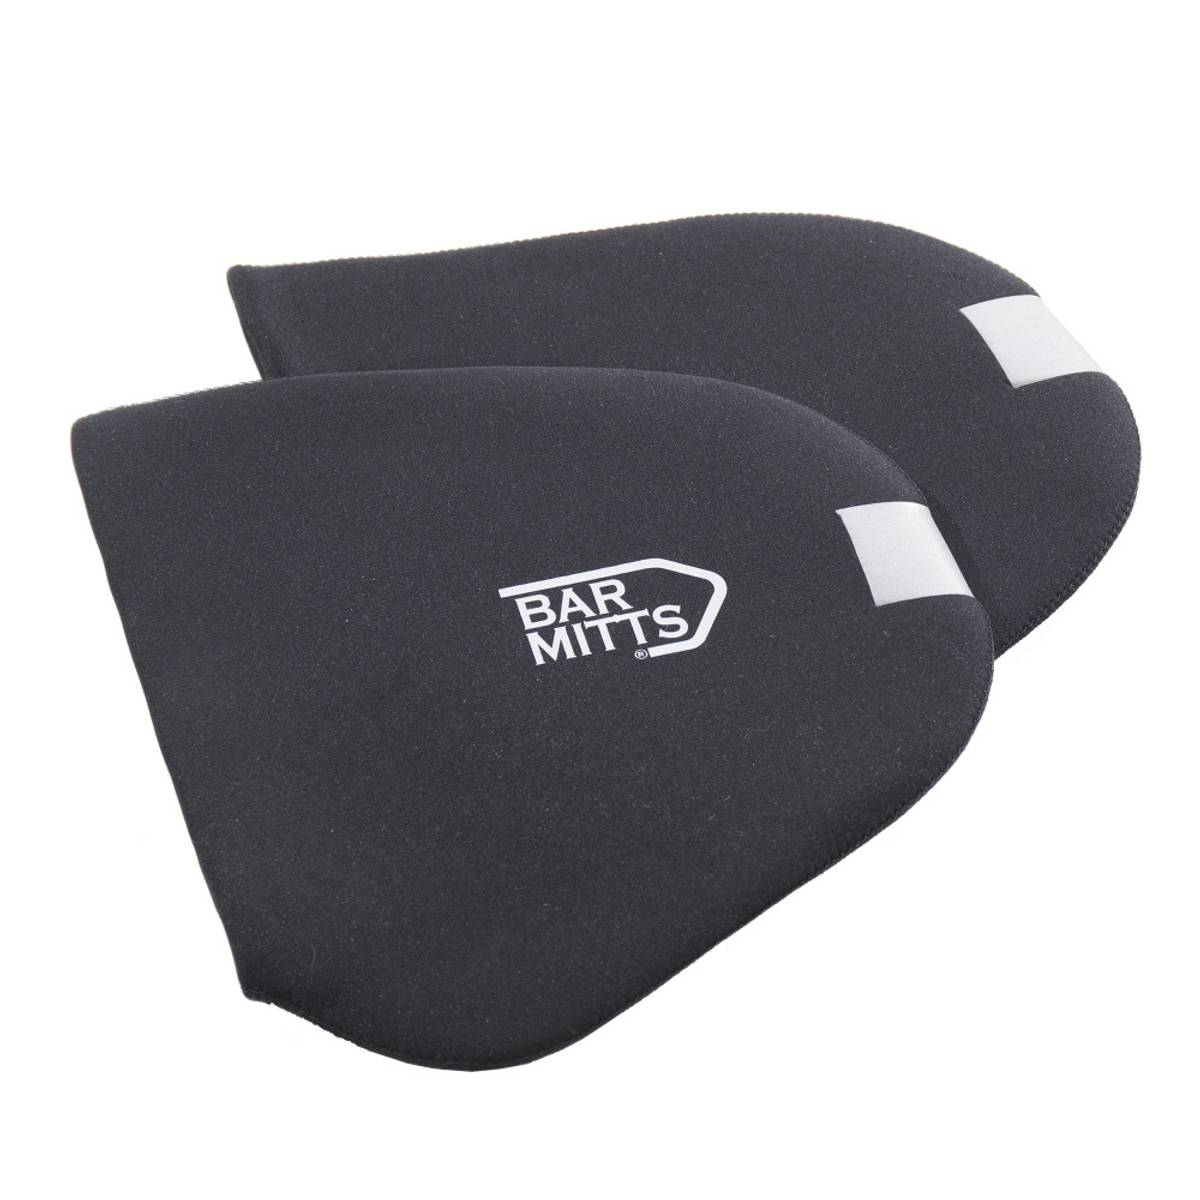 Bar Mitts Road/Cyclo Cross, Dual Position